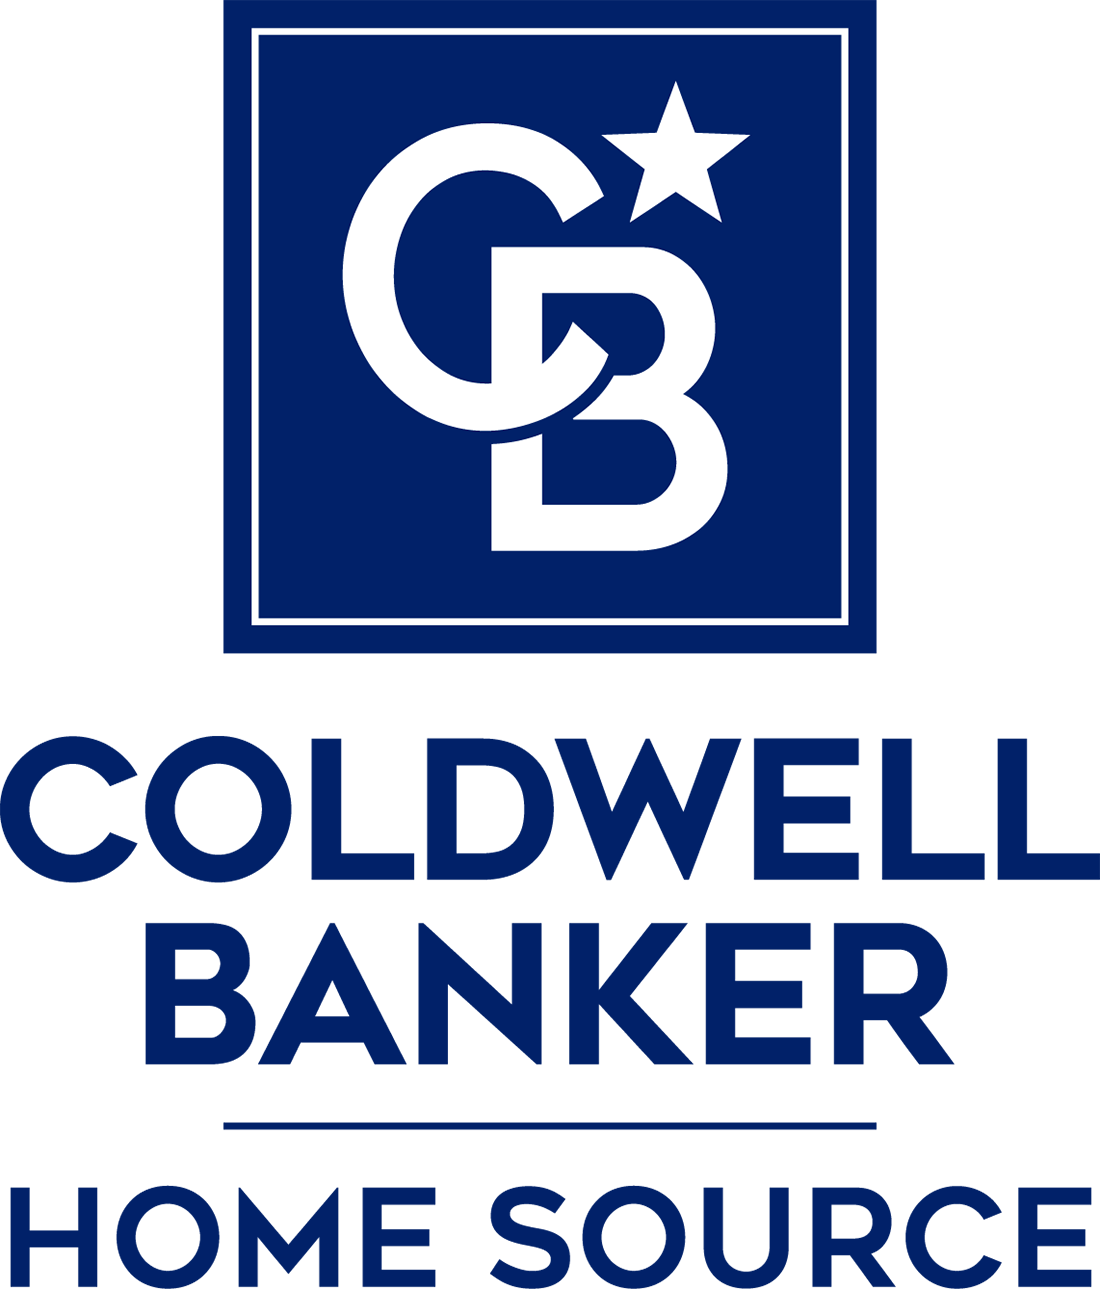 Joe Rinchiuso - Coldwell Banker Home Source Logo